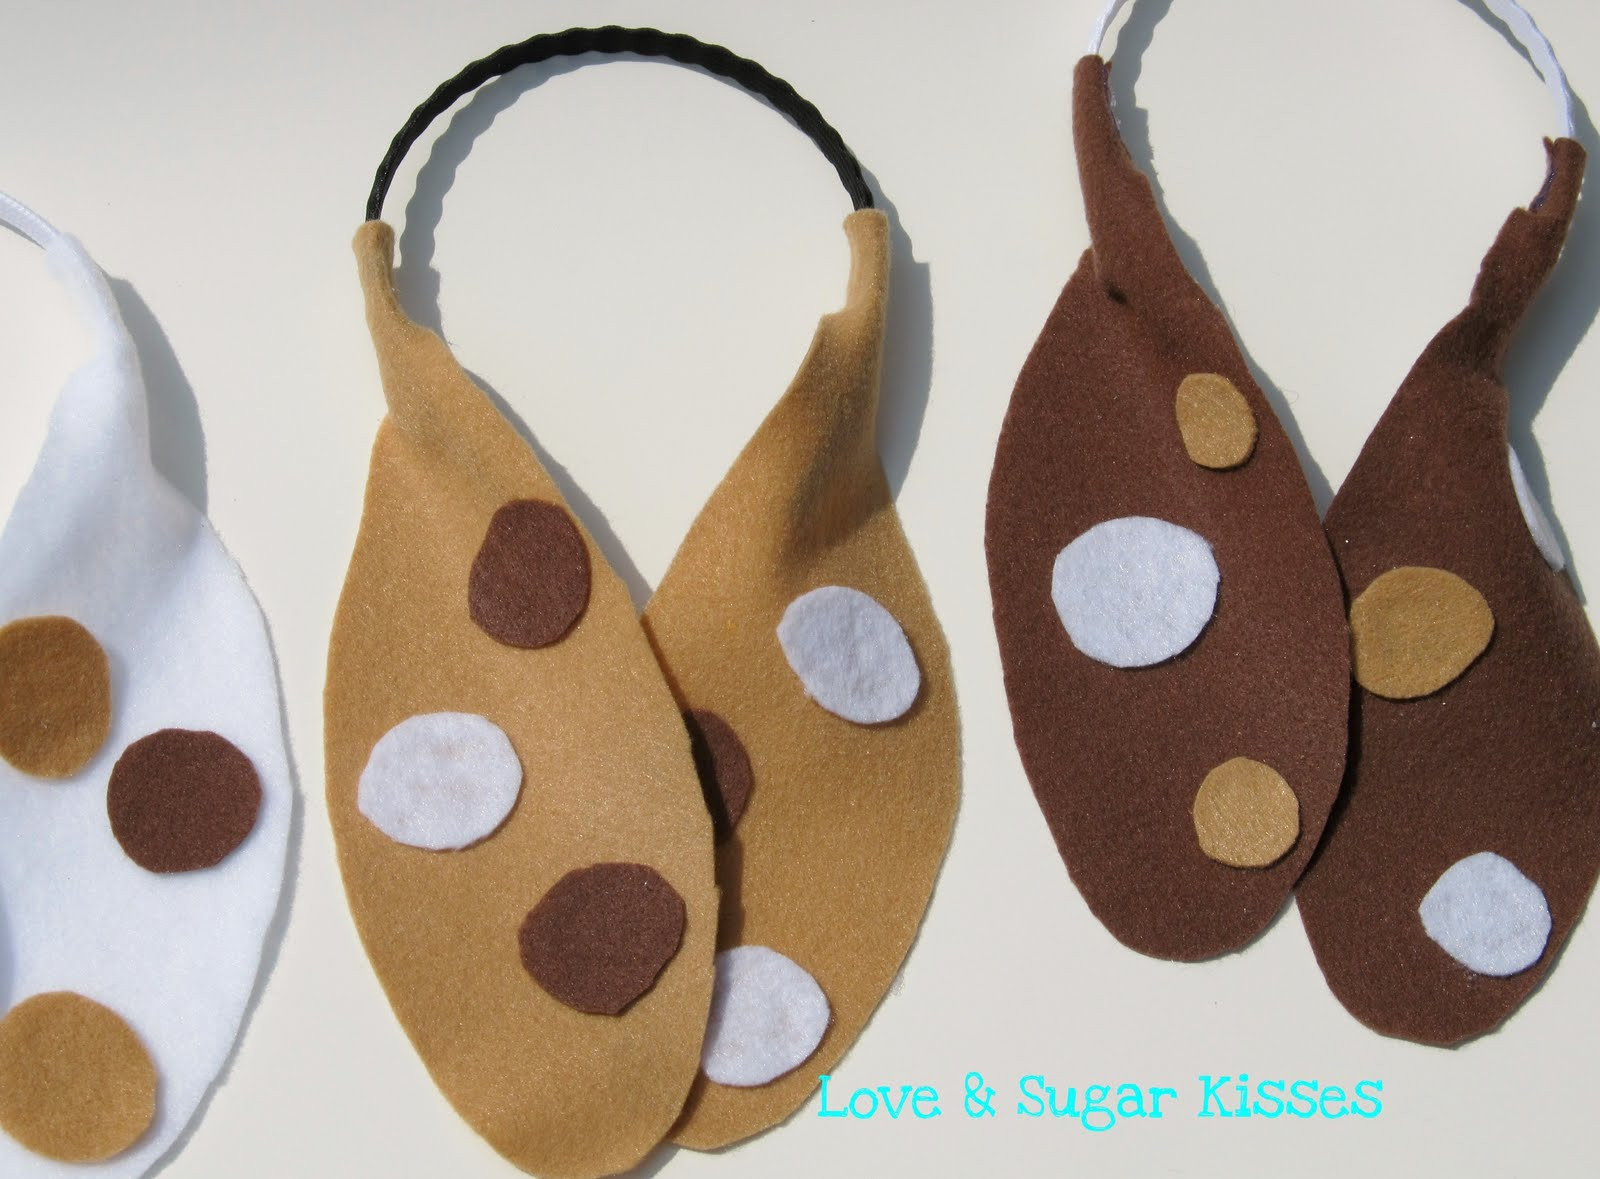 Best ideas about Dog Ears Headband DIY . Save or Pin Love & Sugar Kisses DIY Puppy Ears Now.